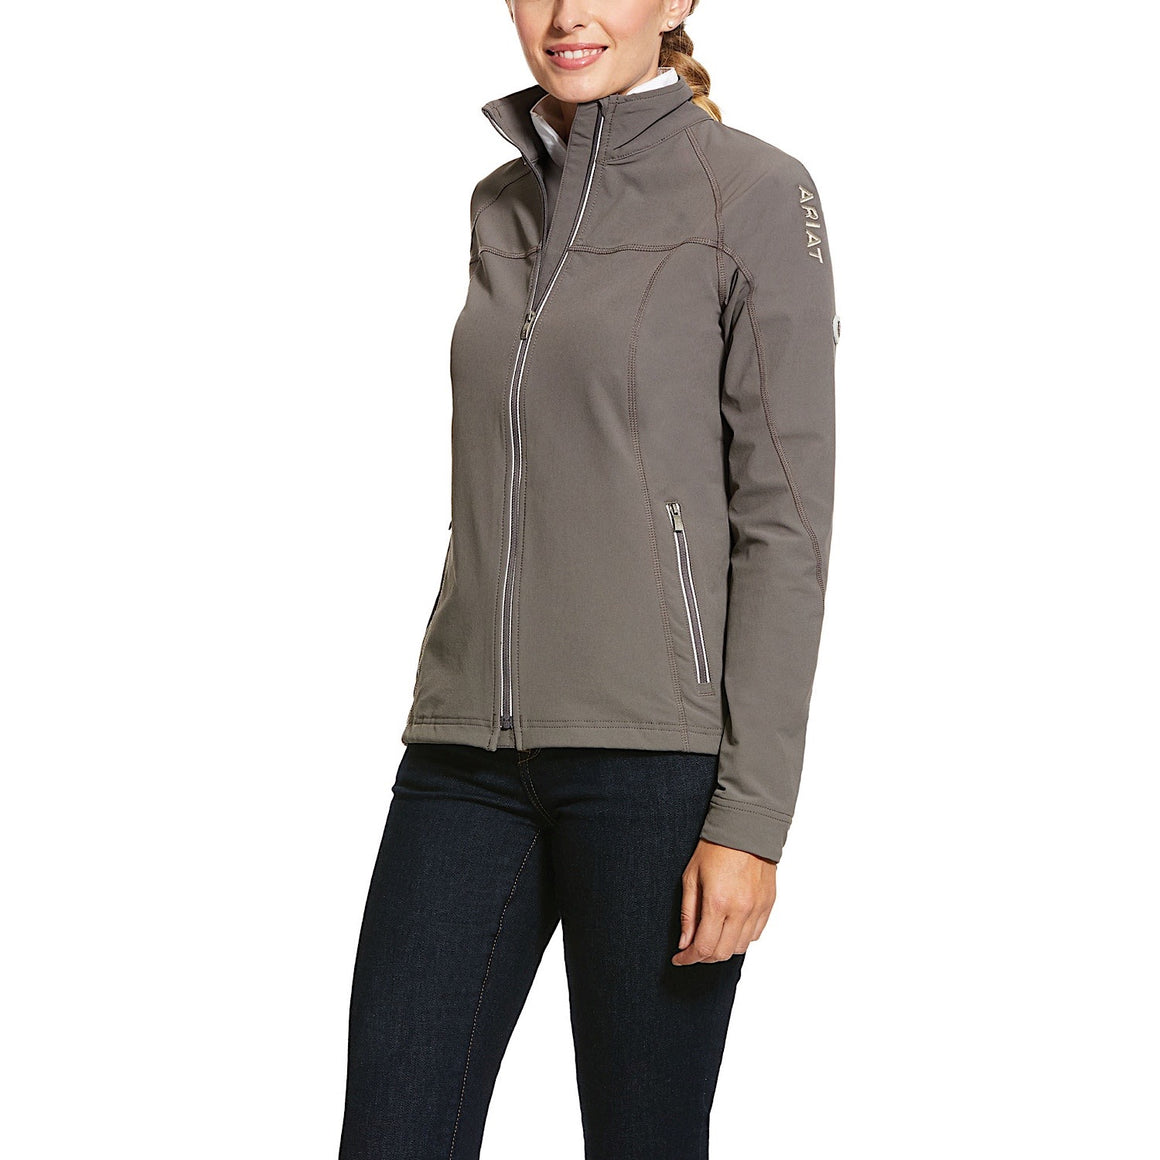 Ariat Womens 2.0 Soft Shell Jacket Plum Grey